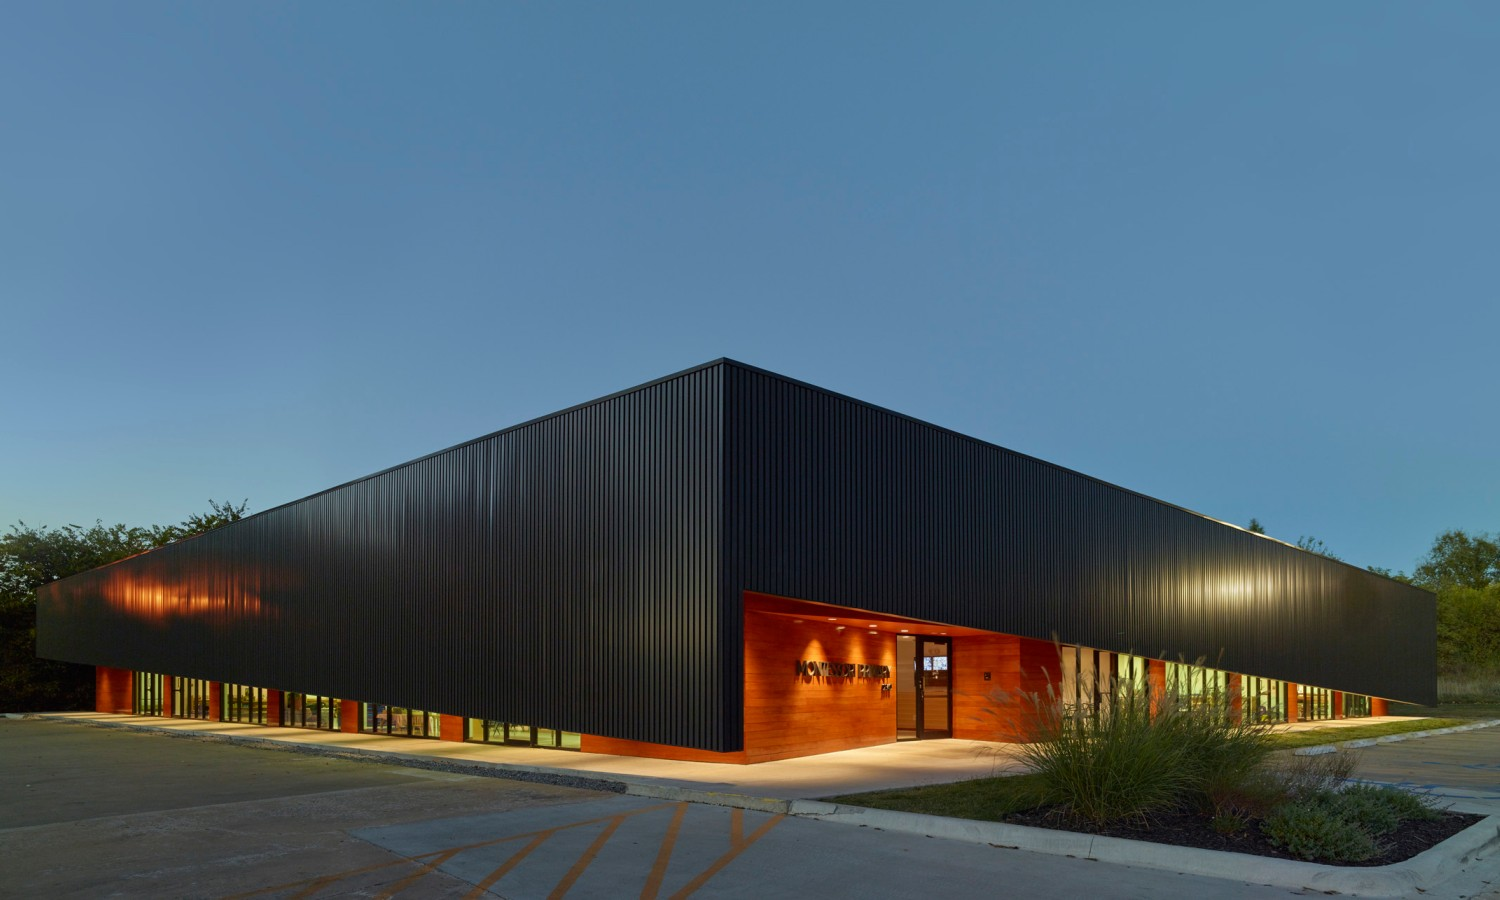 Firm: Marlon Blackwell Architects Location: Fayetteville Photographer: Timothy Hursley